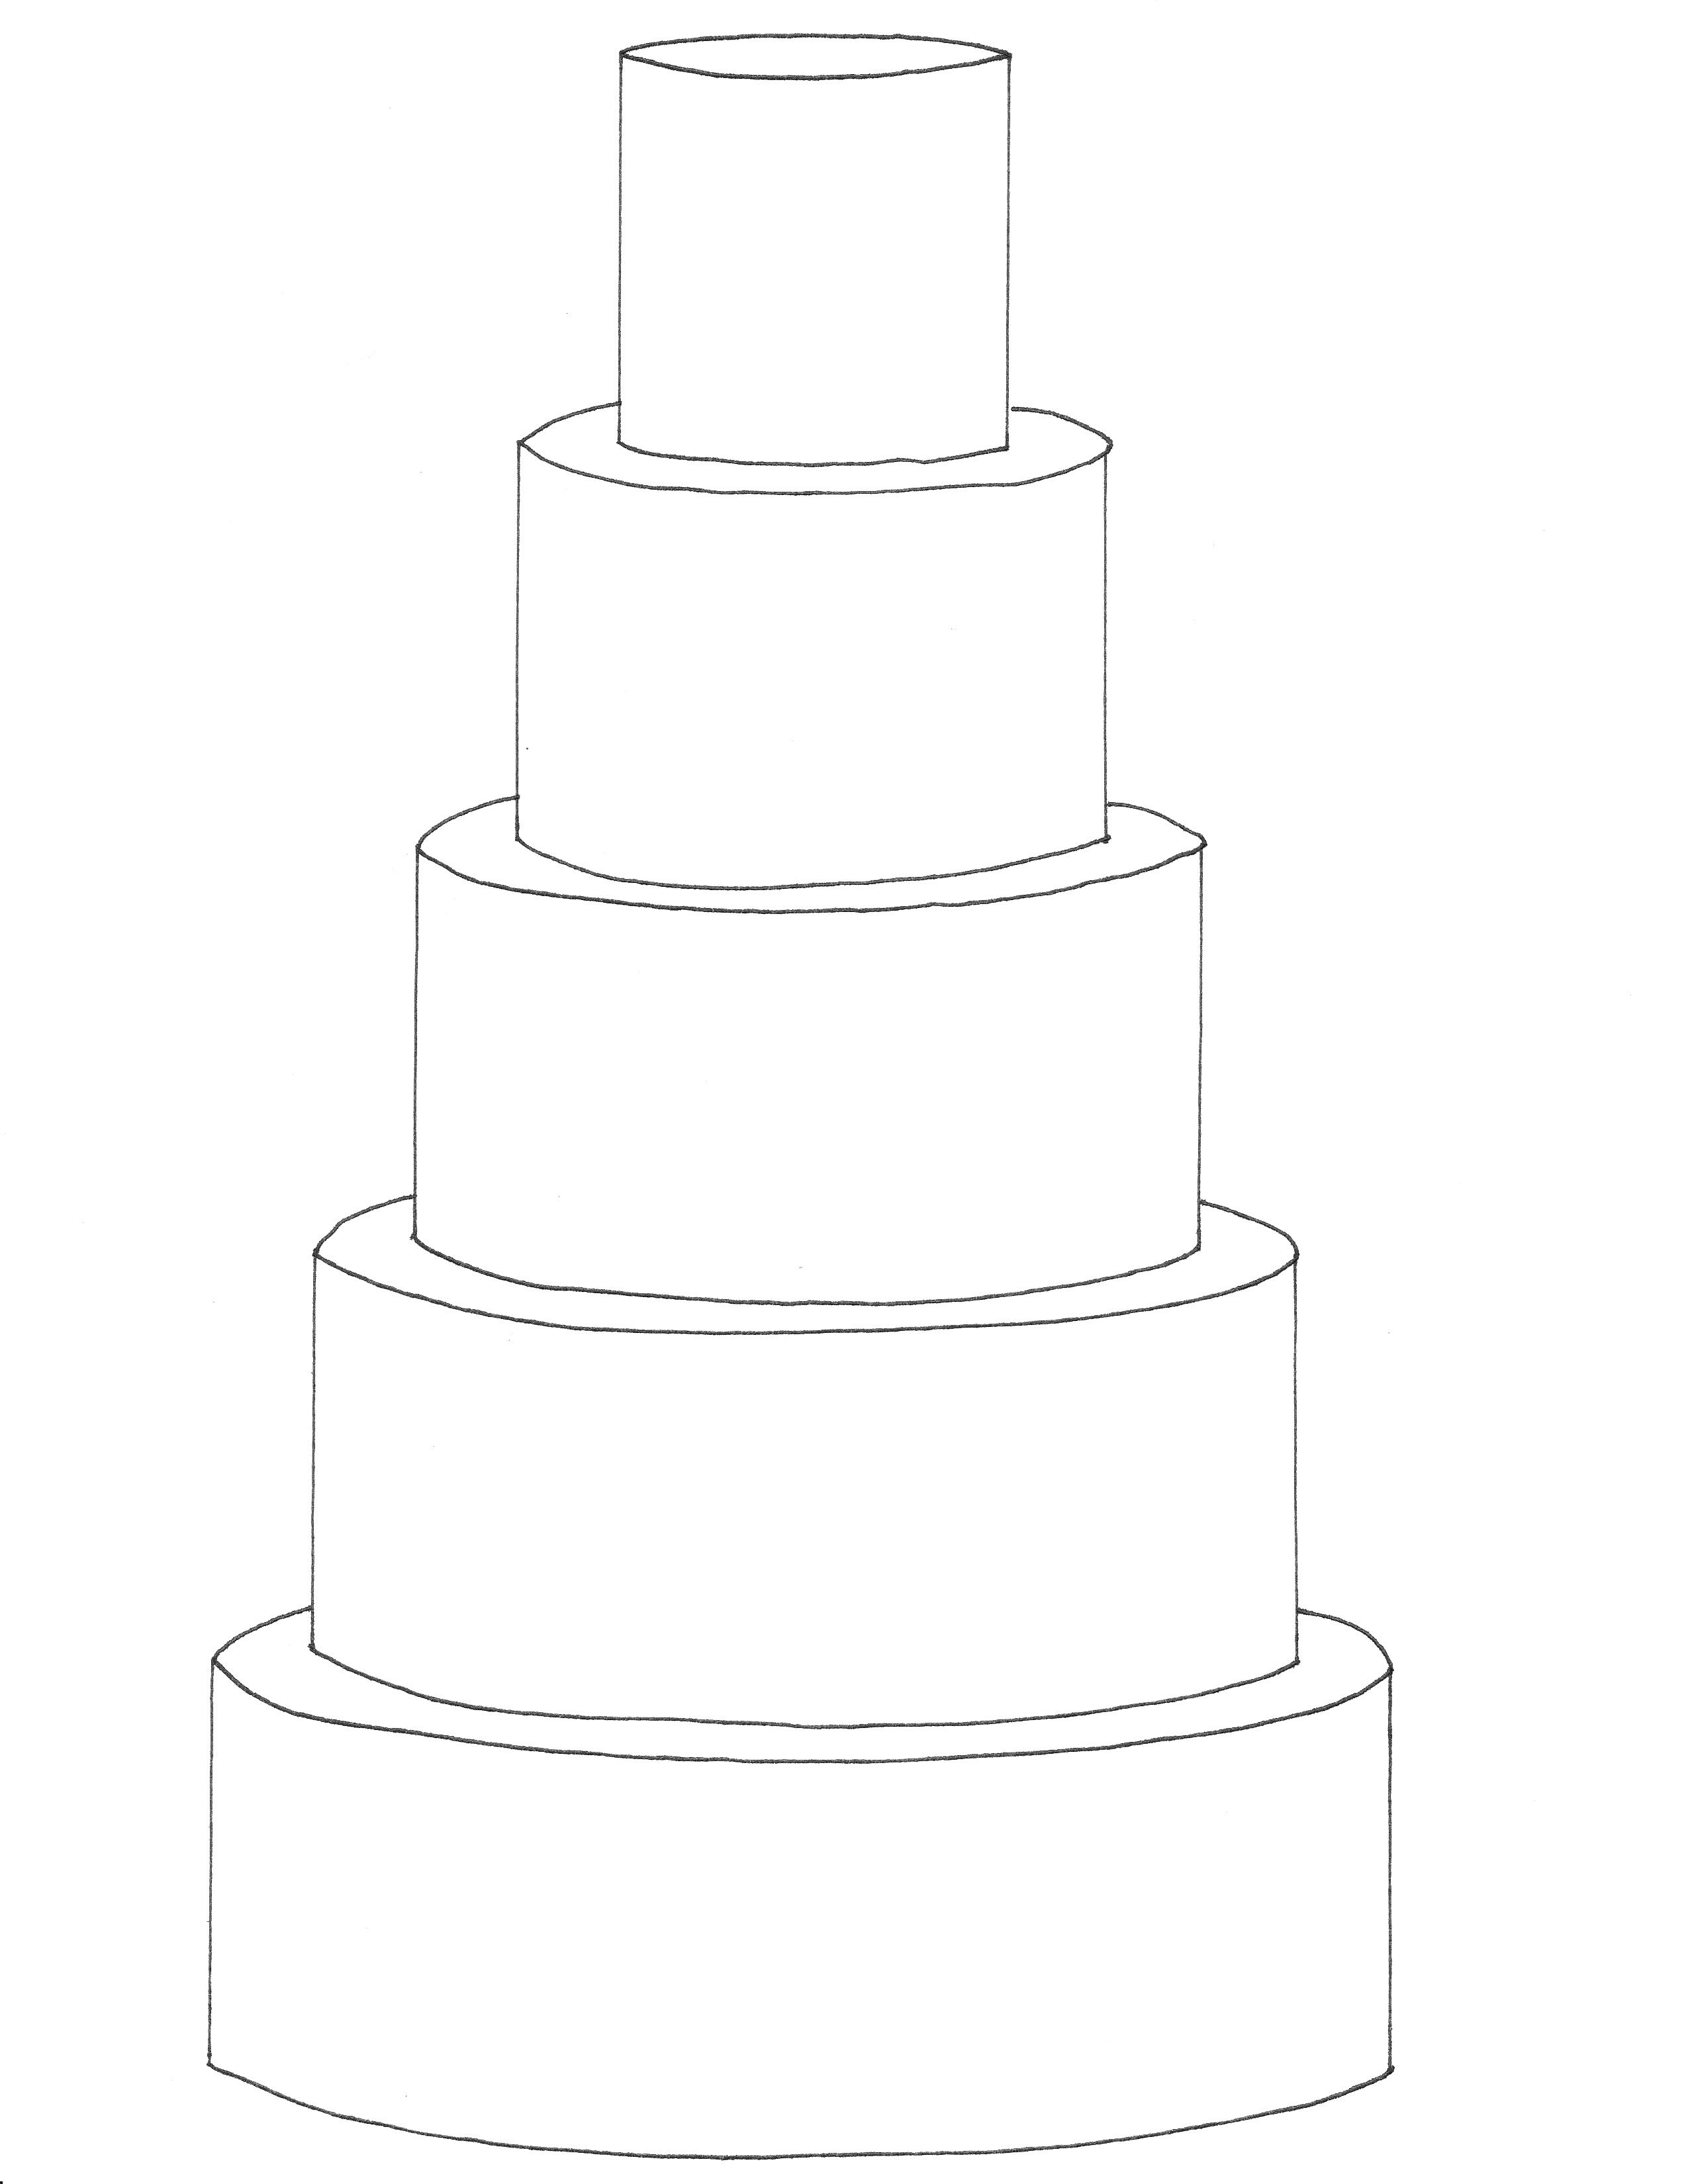 Two tiered cake clipart black and white png library library 5 tier round cake template FREE downloadable cake templates ... png library library